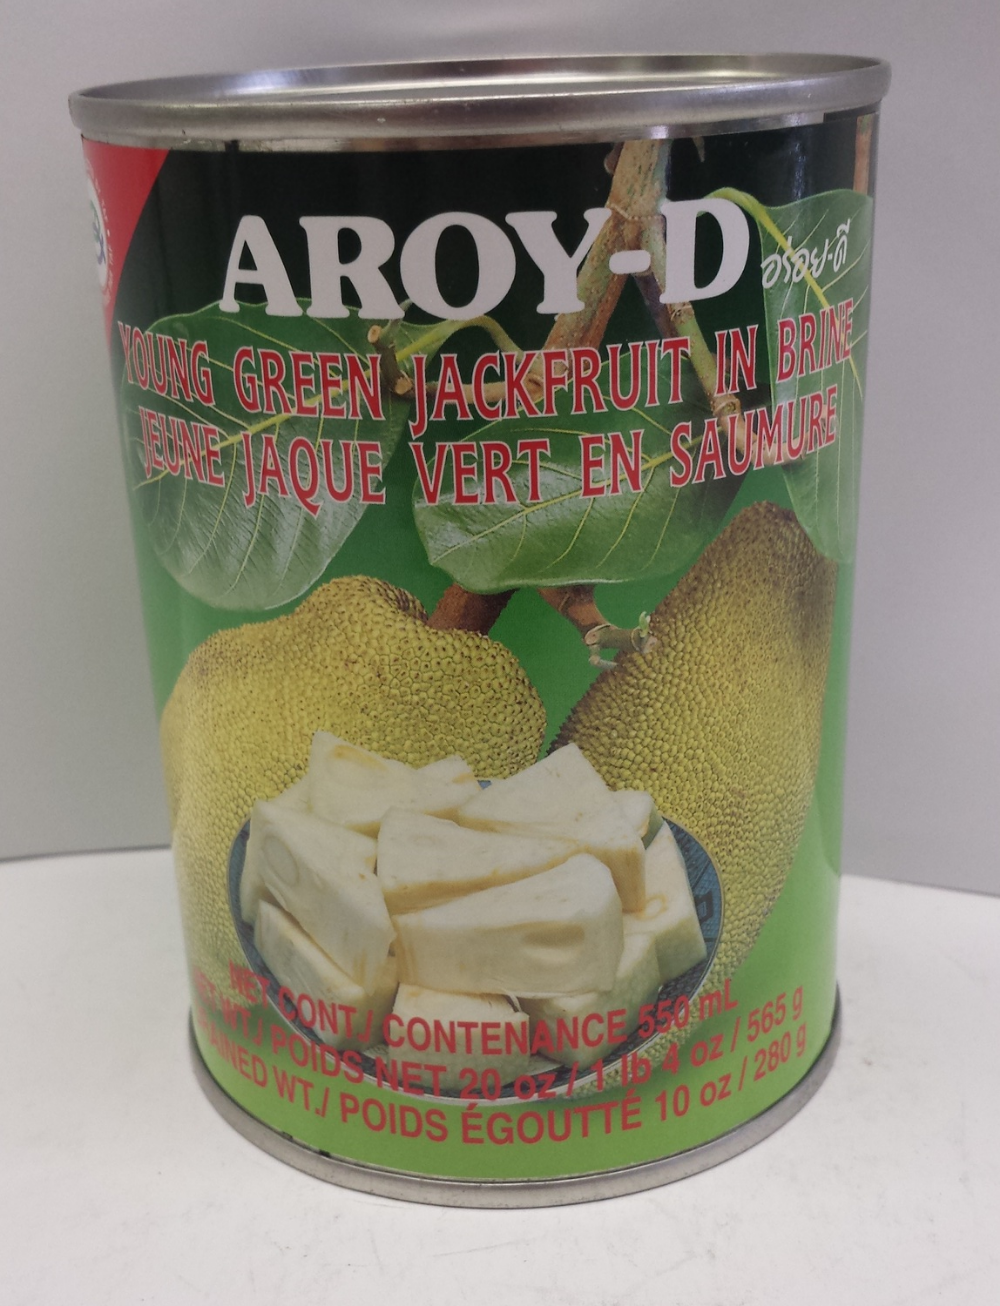 Young Green Jack fruit    Aroy-D   VC19093 24x20 oz